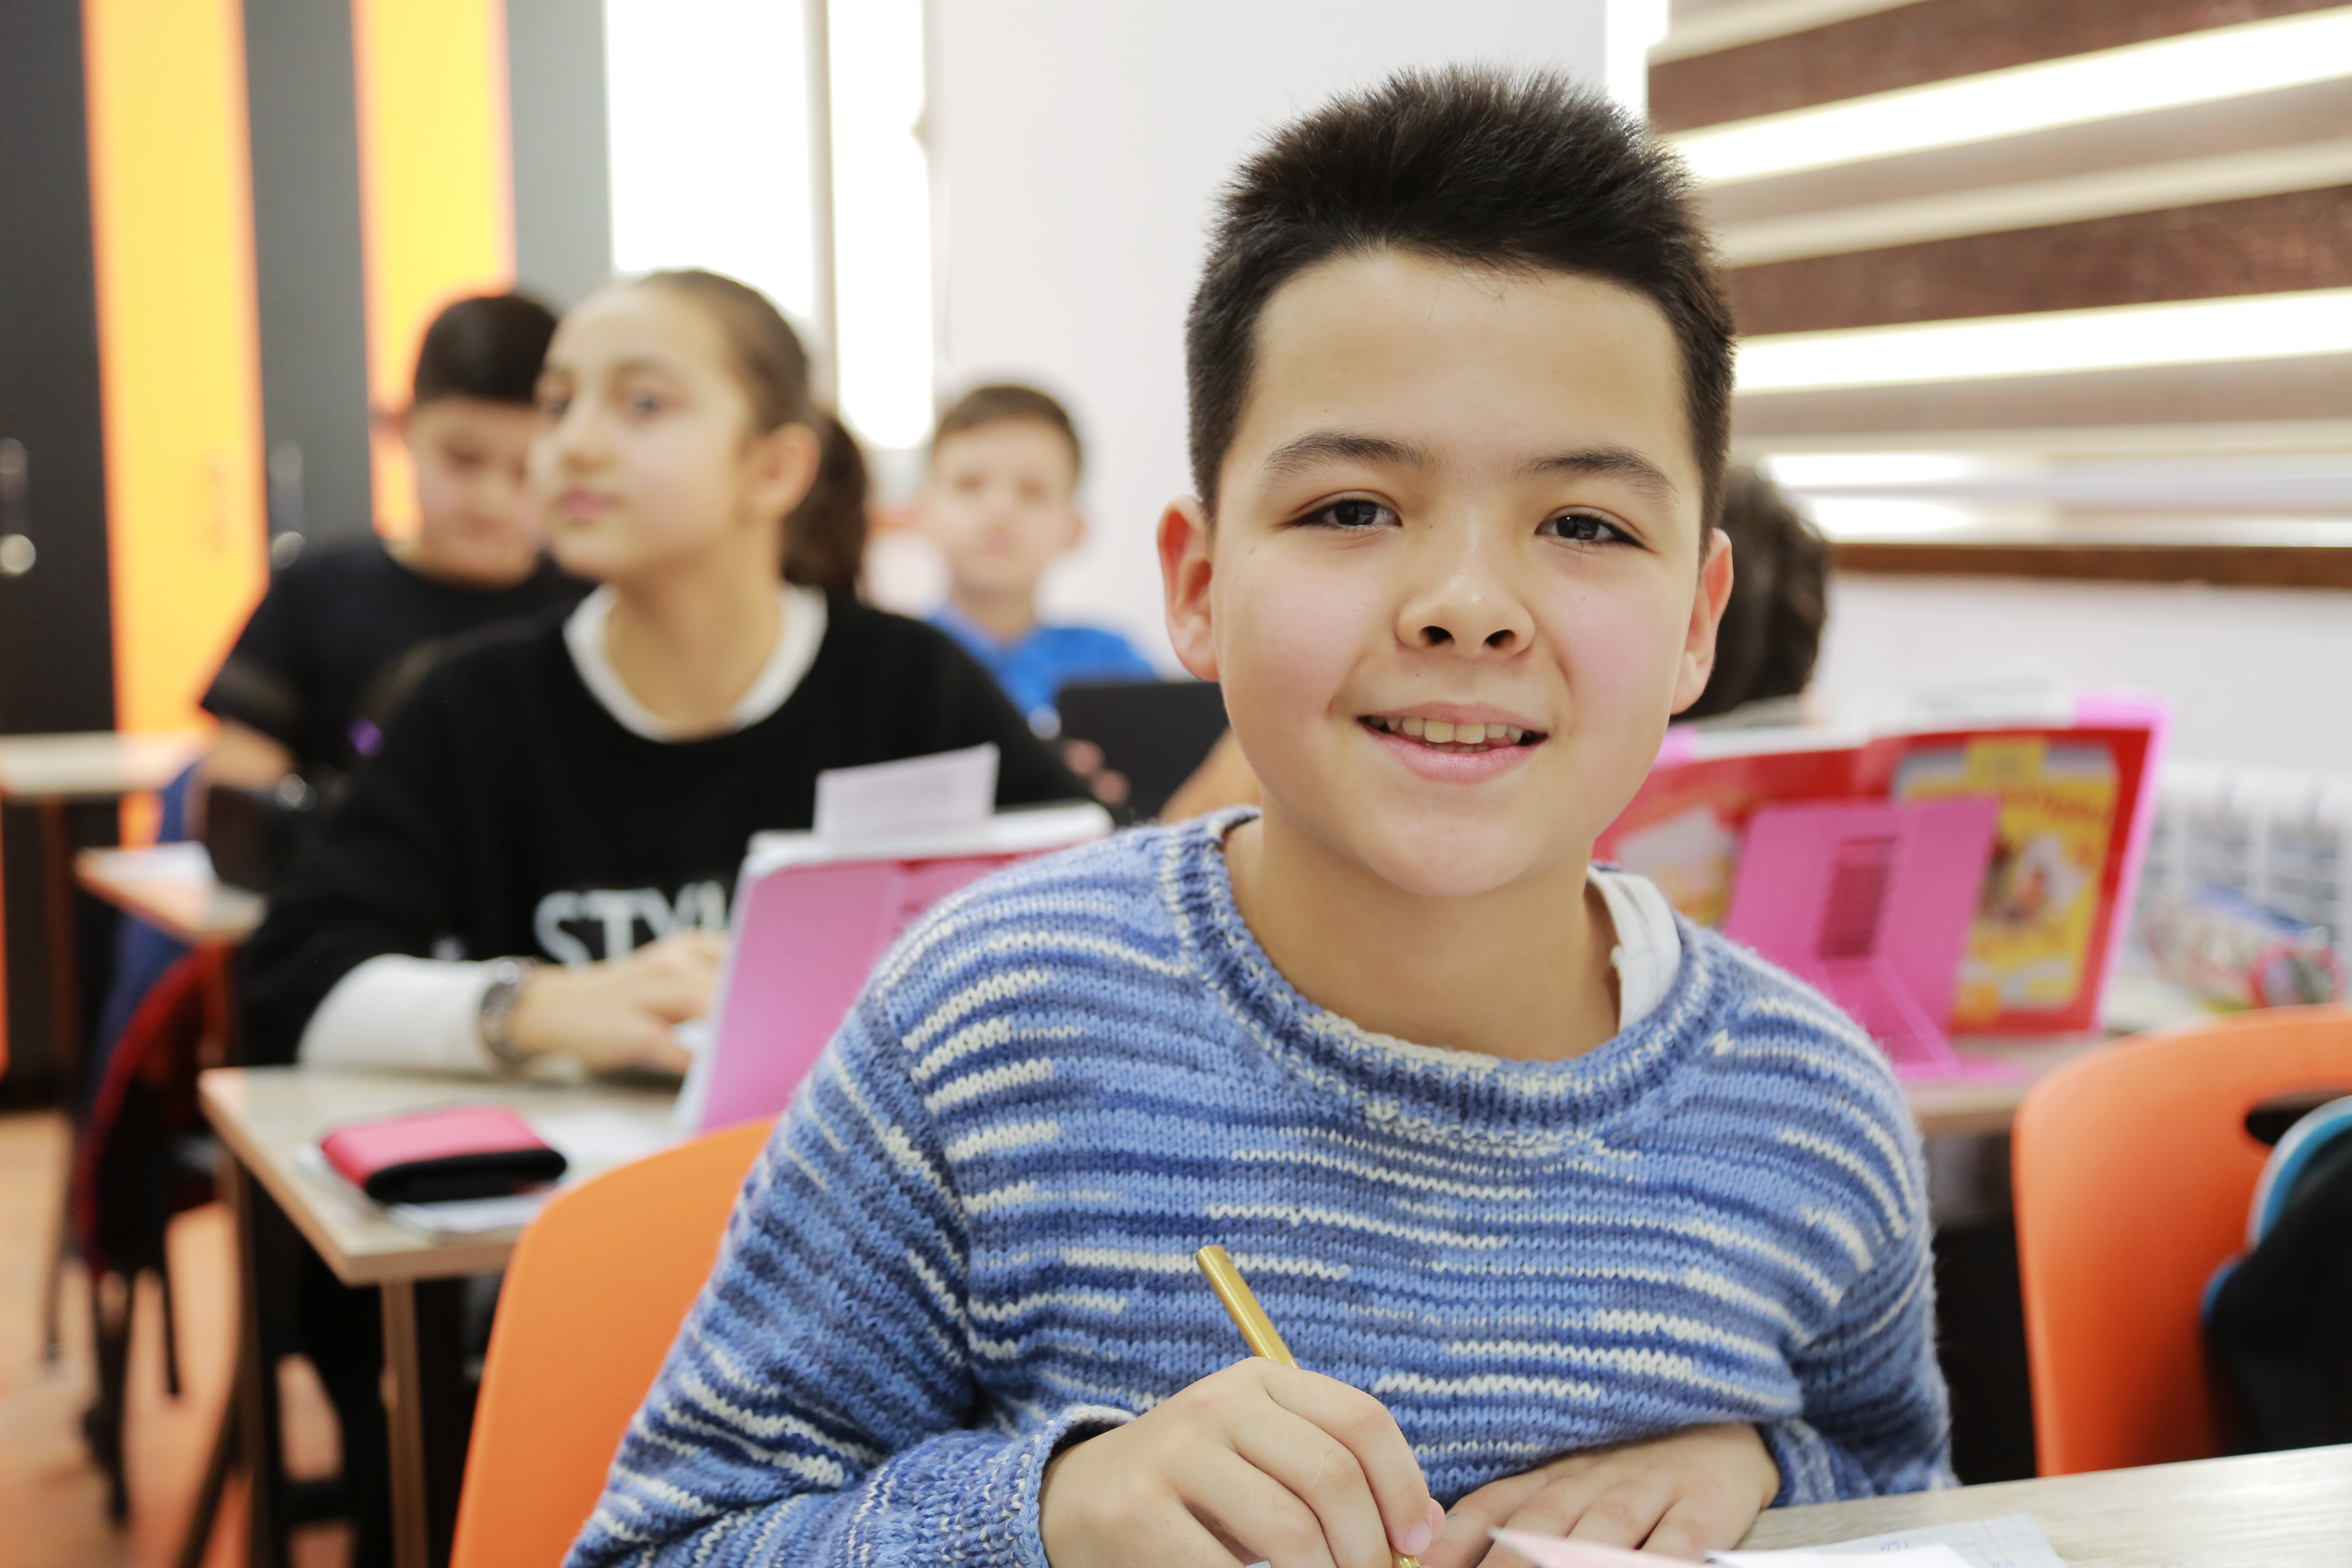 Little boy smiling and holding a pencil to paper at a classroom desk.